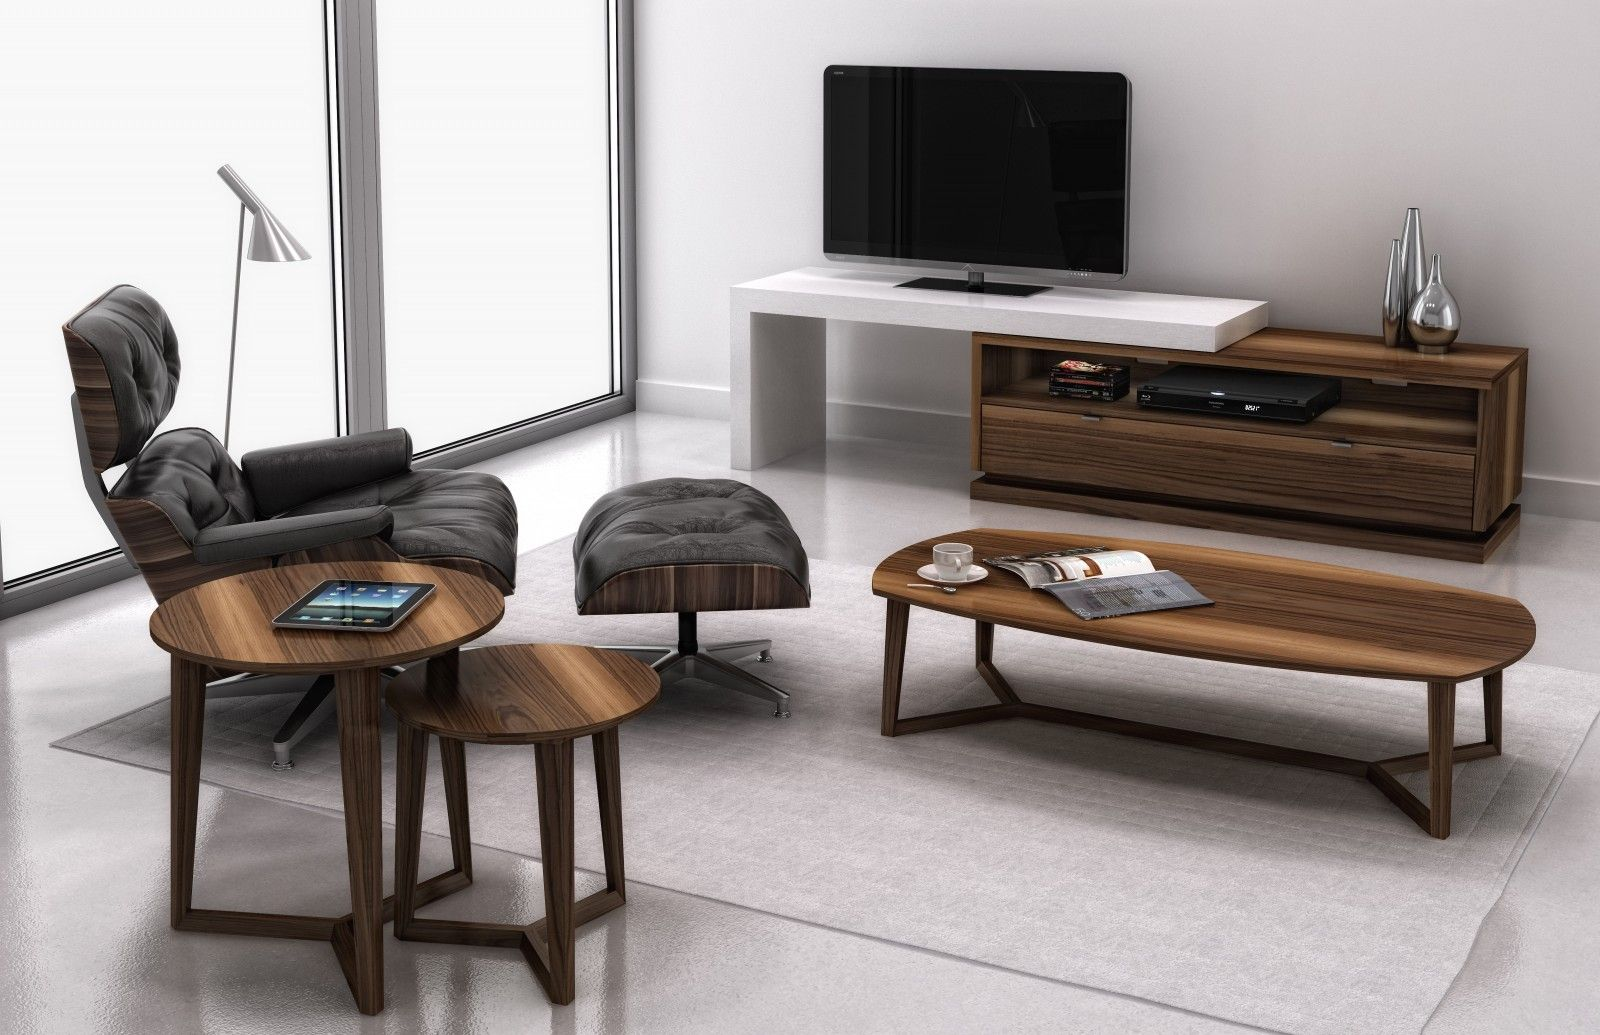 Center Table Moment Collection Furniture Manufacturer